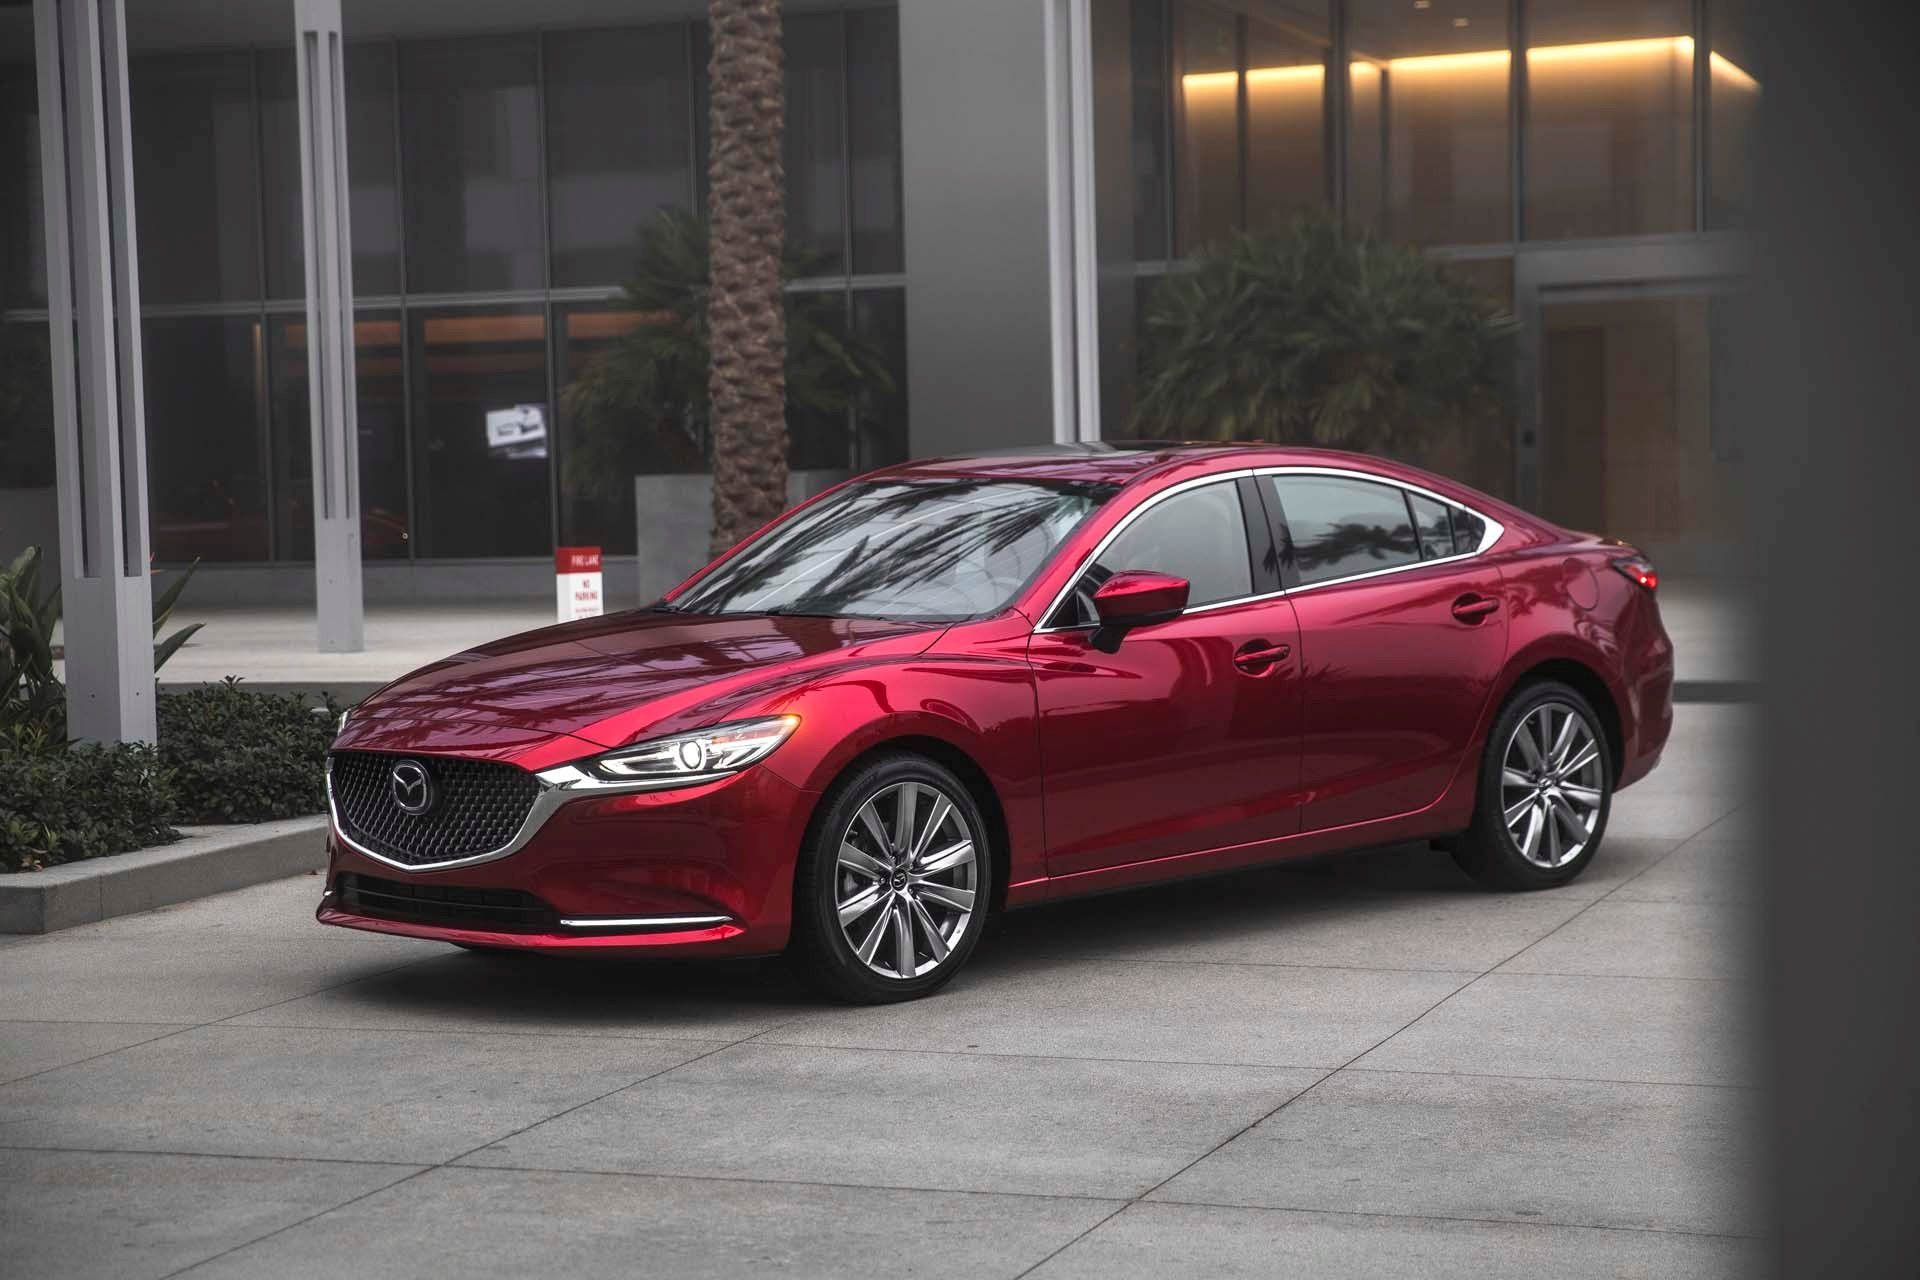 New 2019 Mazda-Mazda6 Touring Mazda6 Touring for sale $26,400 at M and V Leasing in Brooklyn NY 11223 1